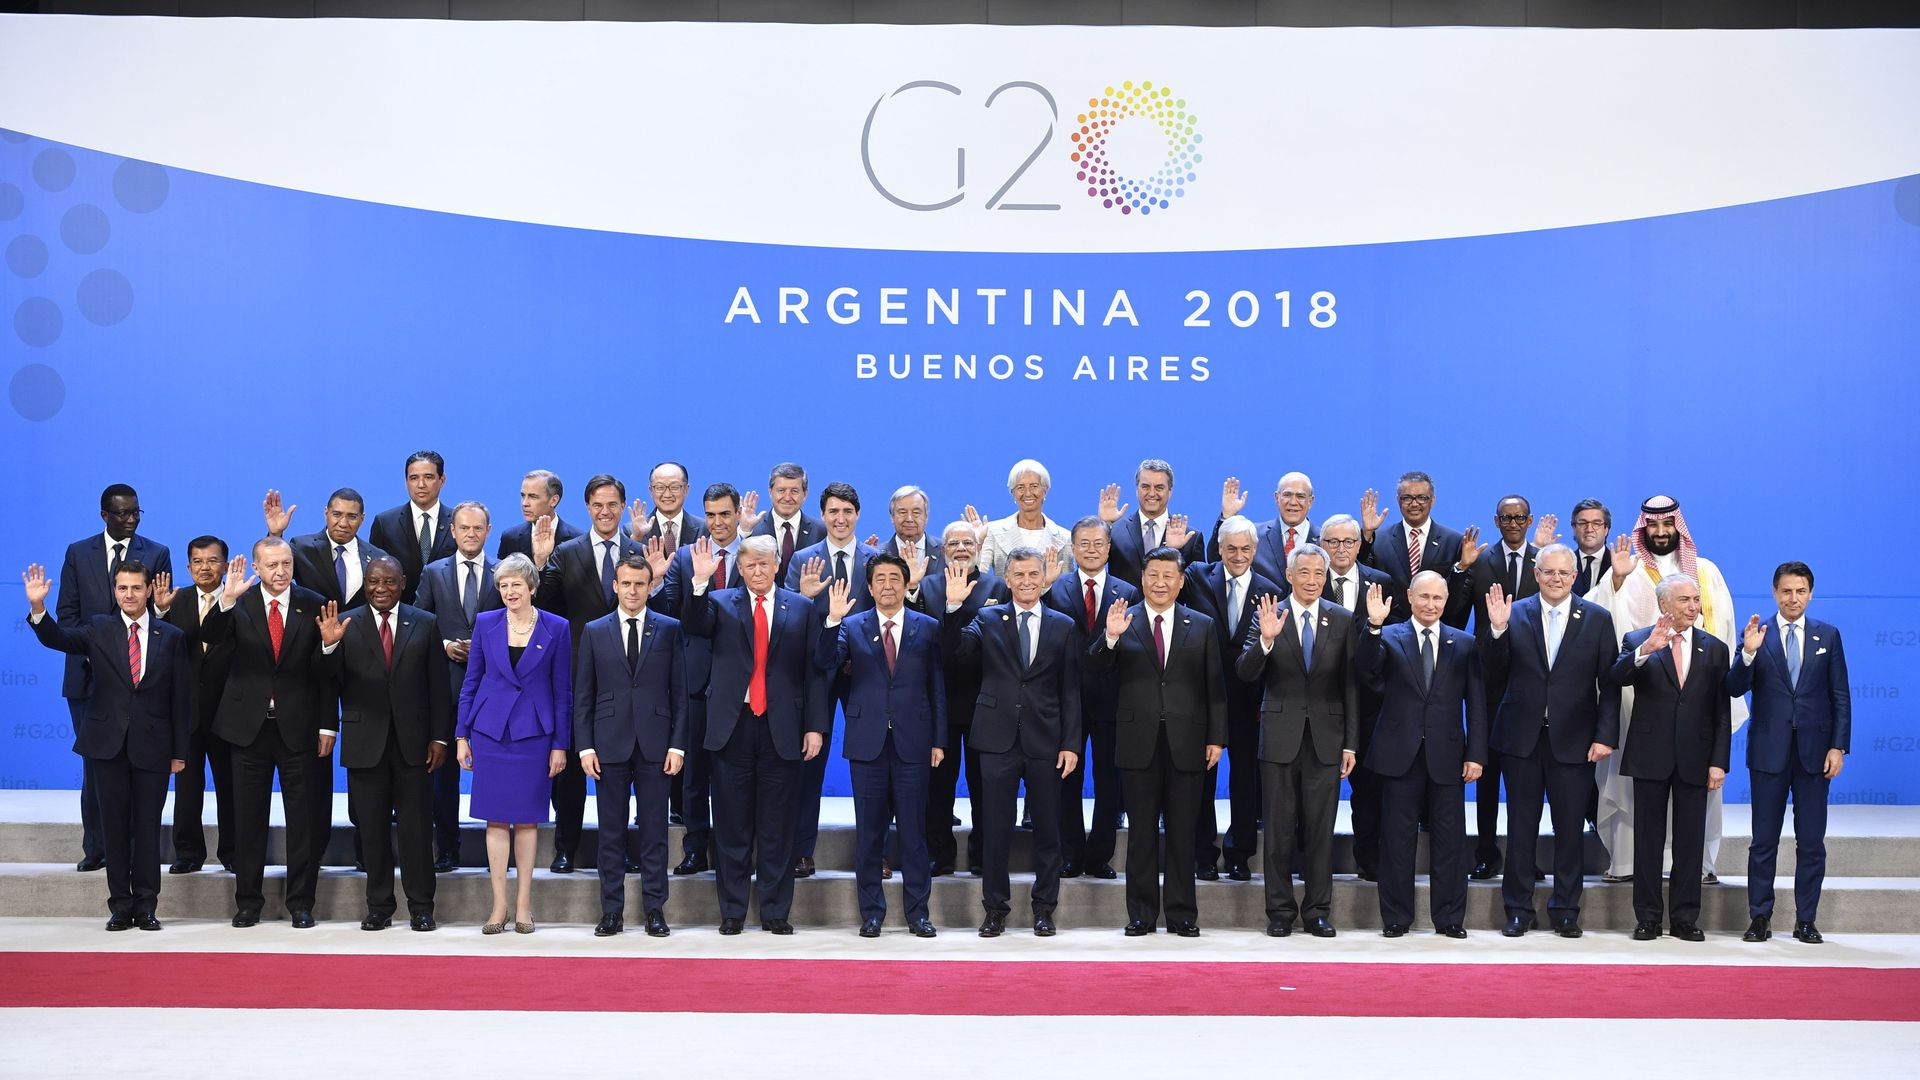 Leaders at the G20 Summit